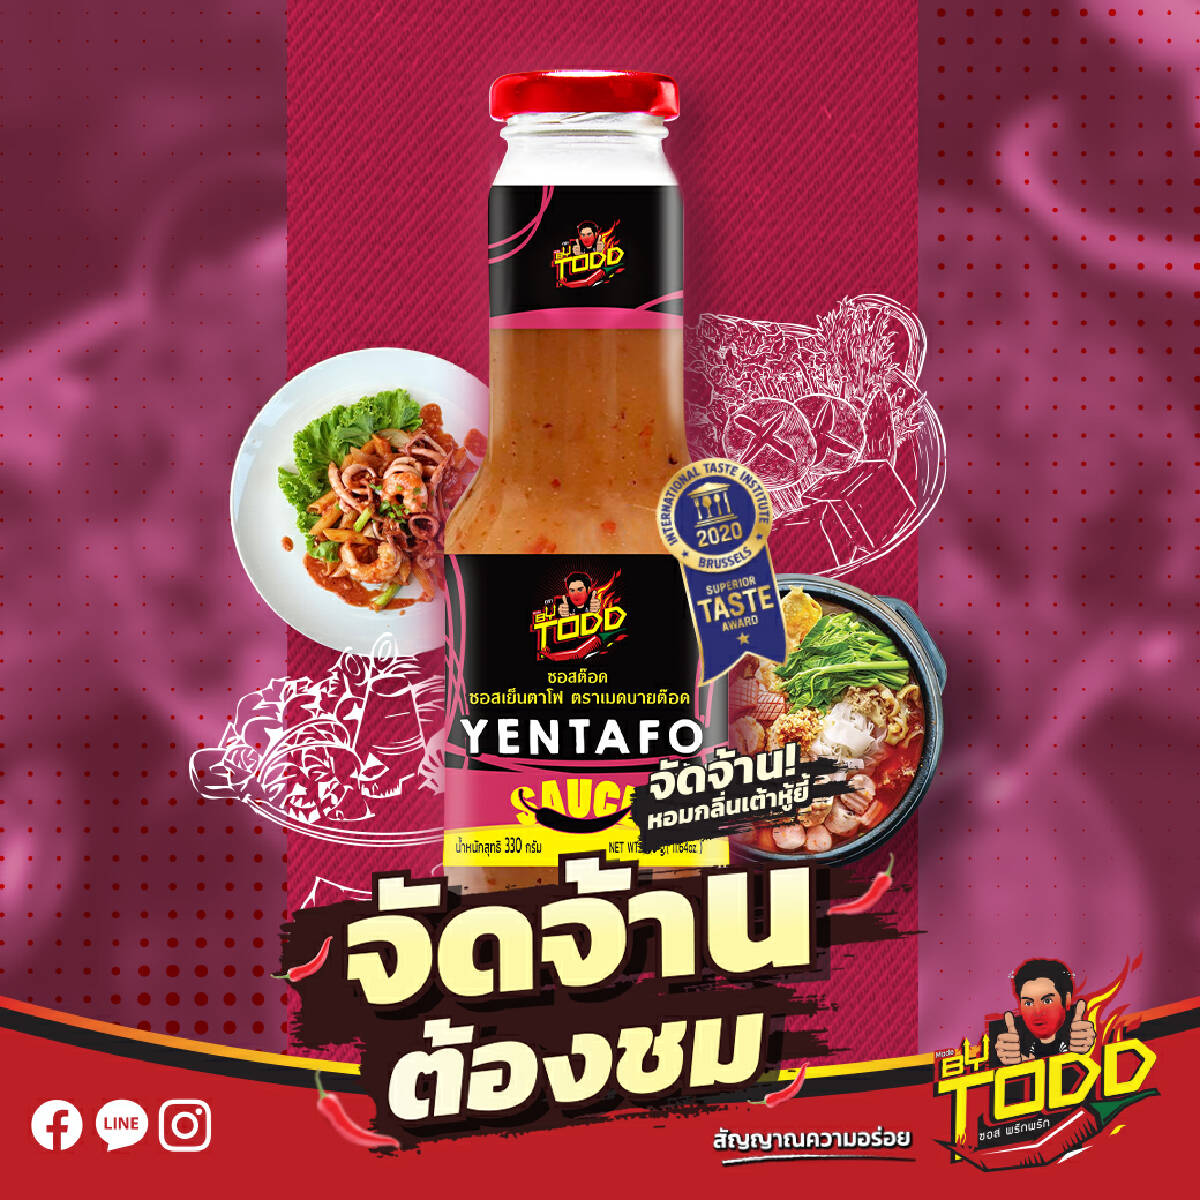 """Taste and Make Yentafo Like Never Before with """"Yentafo Sauce made by Todd"""""""